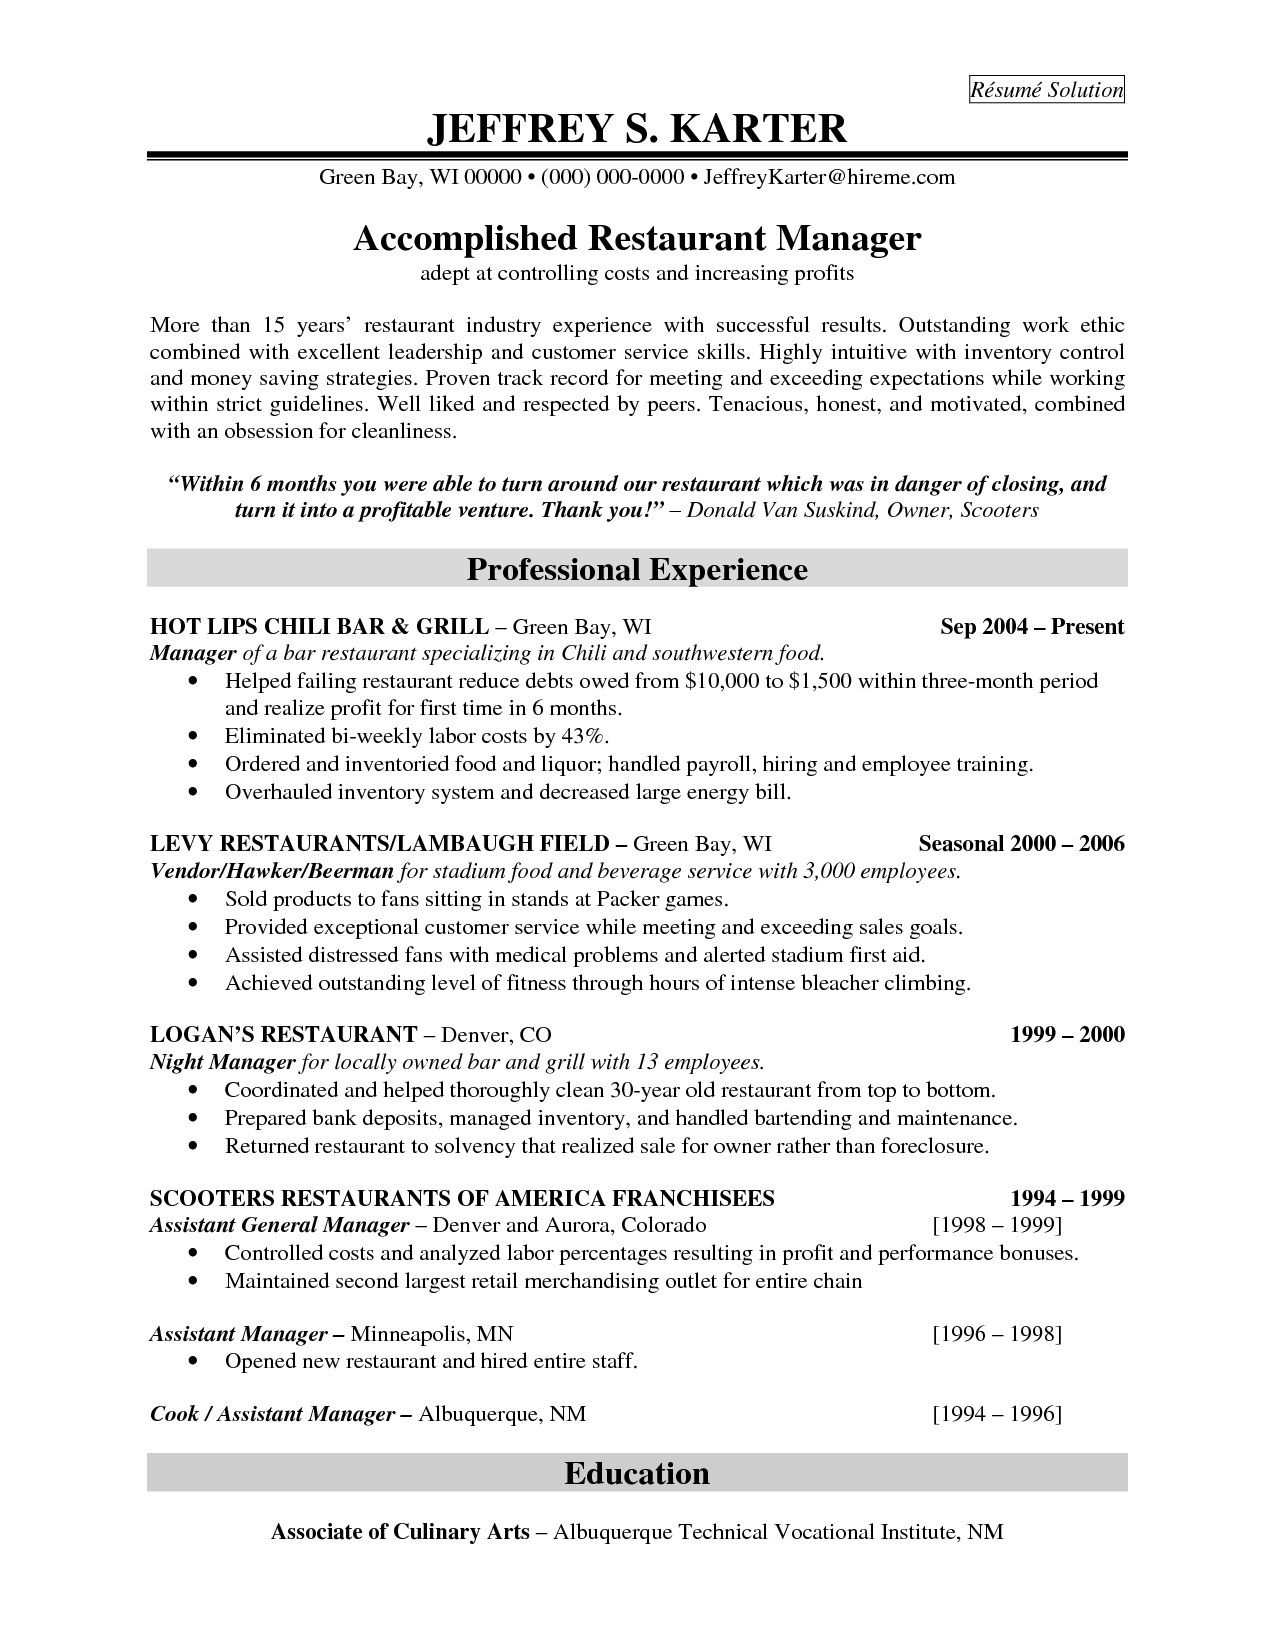 Professional Experience For Accomplidhed Restaurant Manager Resume Samples